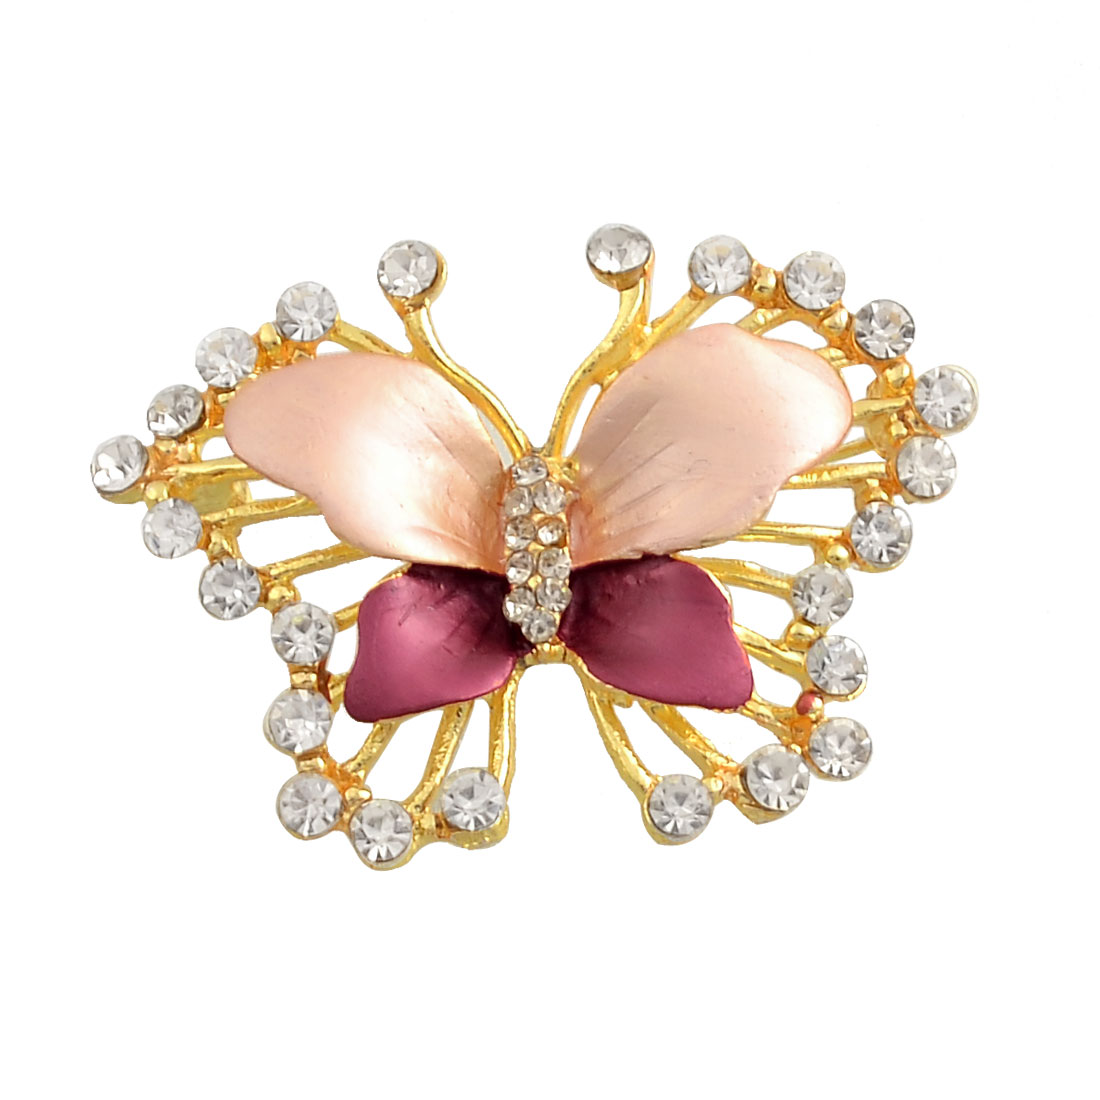 Lady Rhinestone Detailing Amaranth Butterfly Shaped Safety Pin Brooch Breastpin